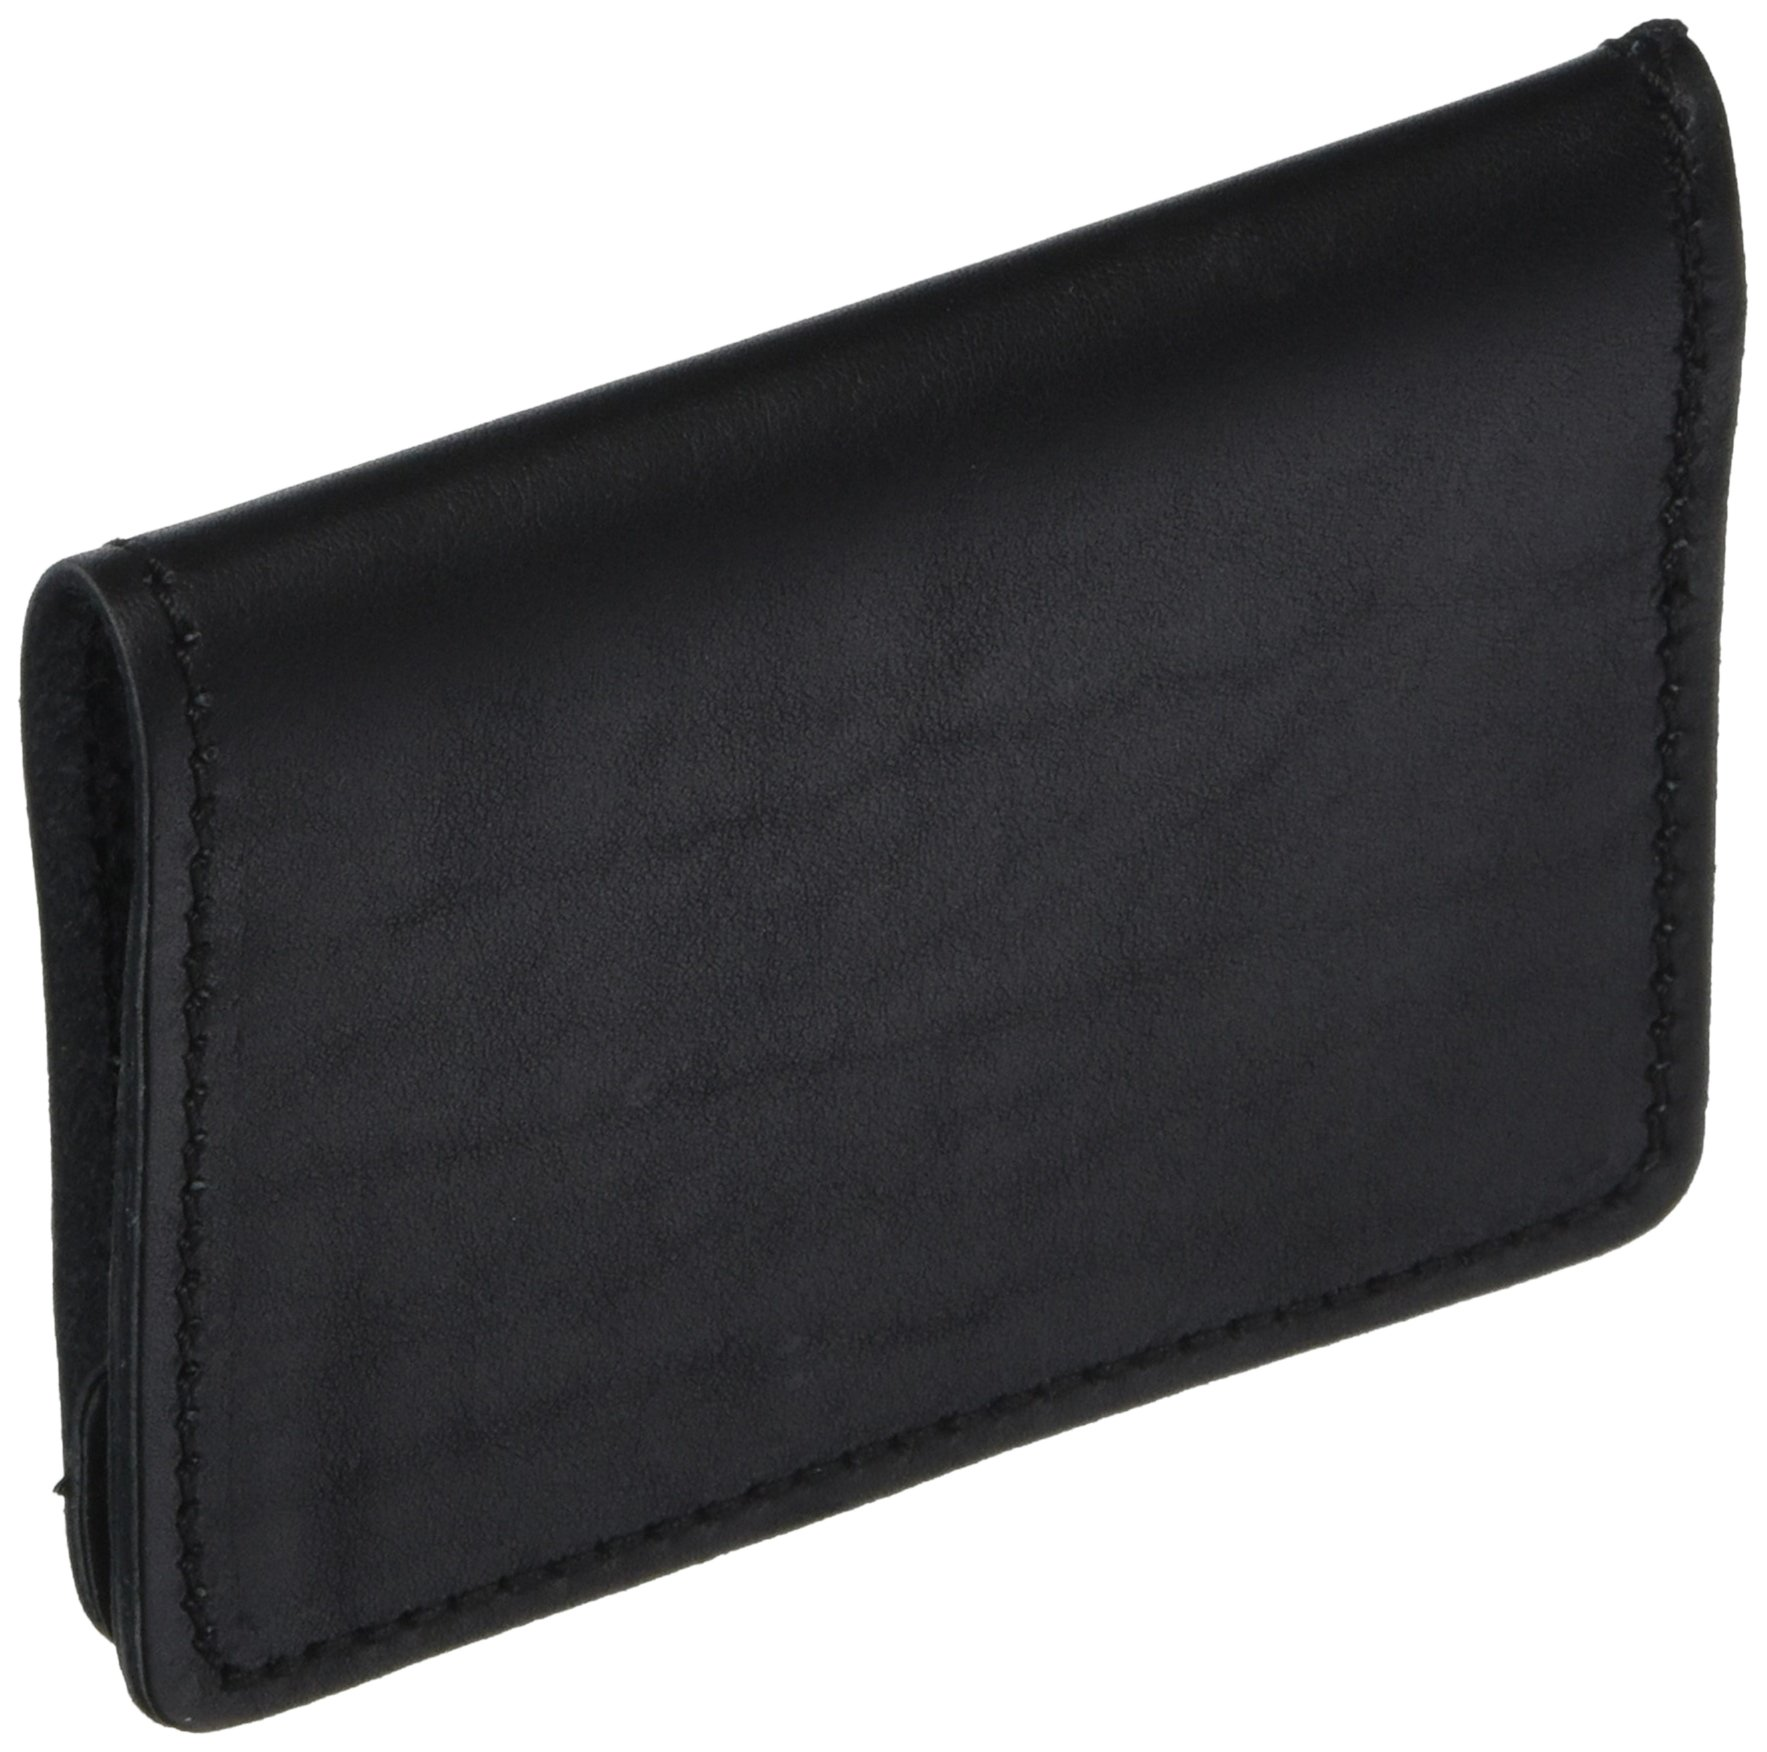 Occidental Leather B315 Oxy Compact Wallet Black